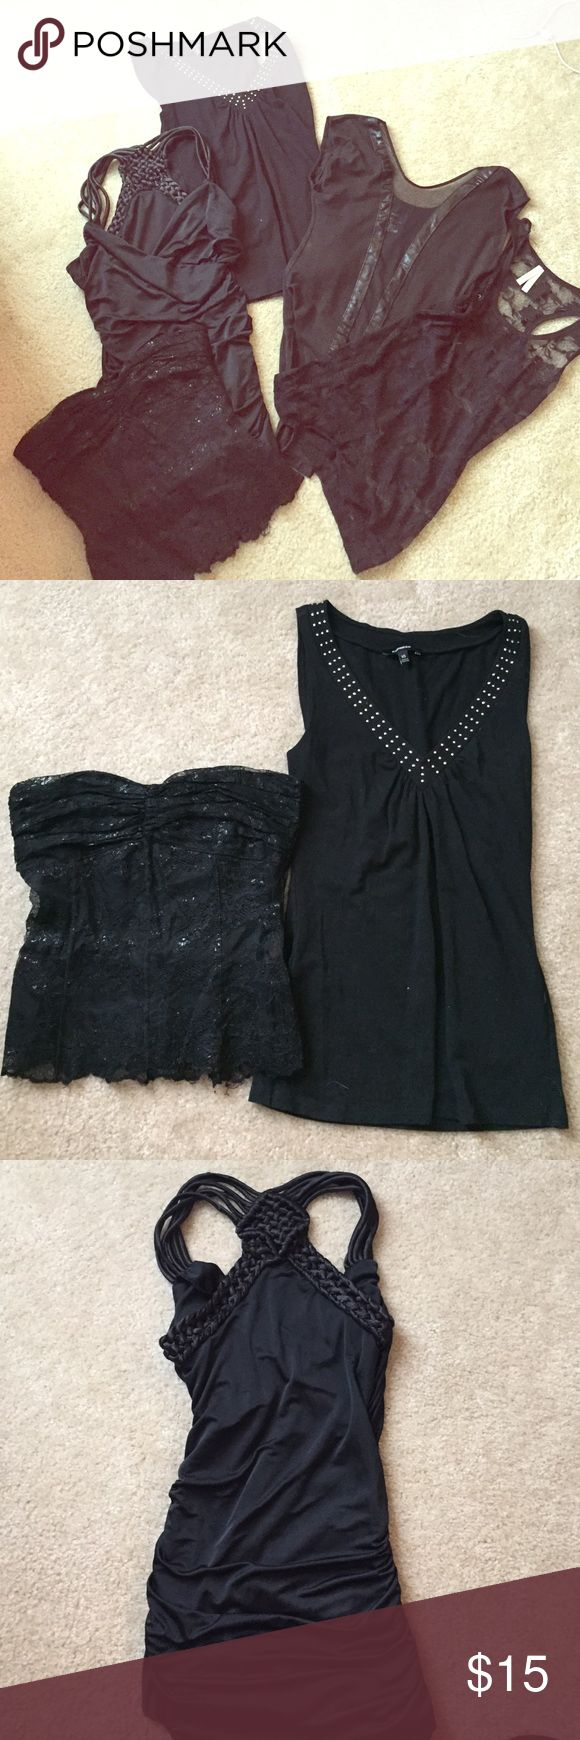 Lot of Black Going Out Tops ⚫️Black strapless, sweetheart neckline Limited top, zips up the back- size 4 ⚫️NO LONGER INCLUDED--Black, sheer bodysuit with sheer, see through down the middle with faux leather trim⚫️ Black lace, see through top- size S ⚫️ Shiny, black, long tank top with braided straps- size S ⚫️ Black Express Tank Top with rhinestones. No missing rhinestones- size XS. Can be split up if necessary Express Tops Tank Tops